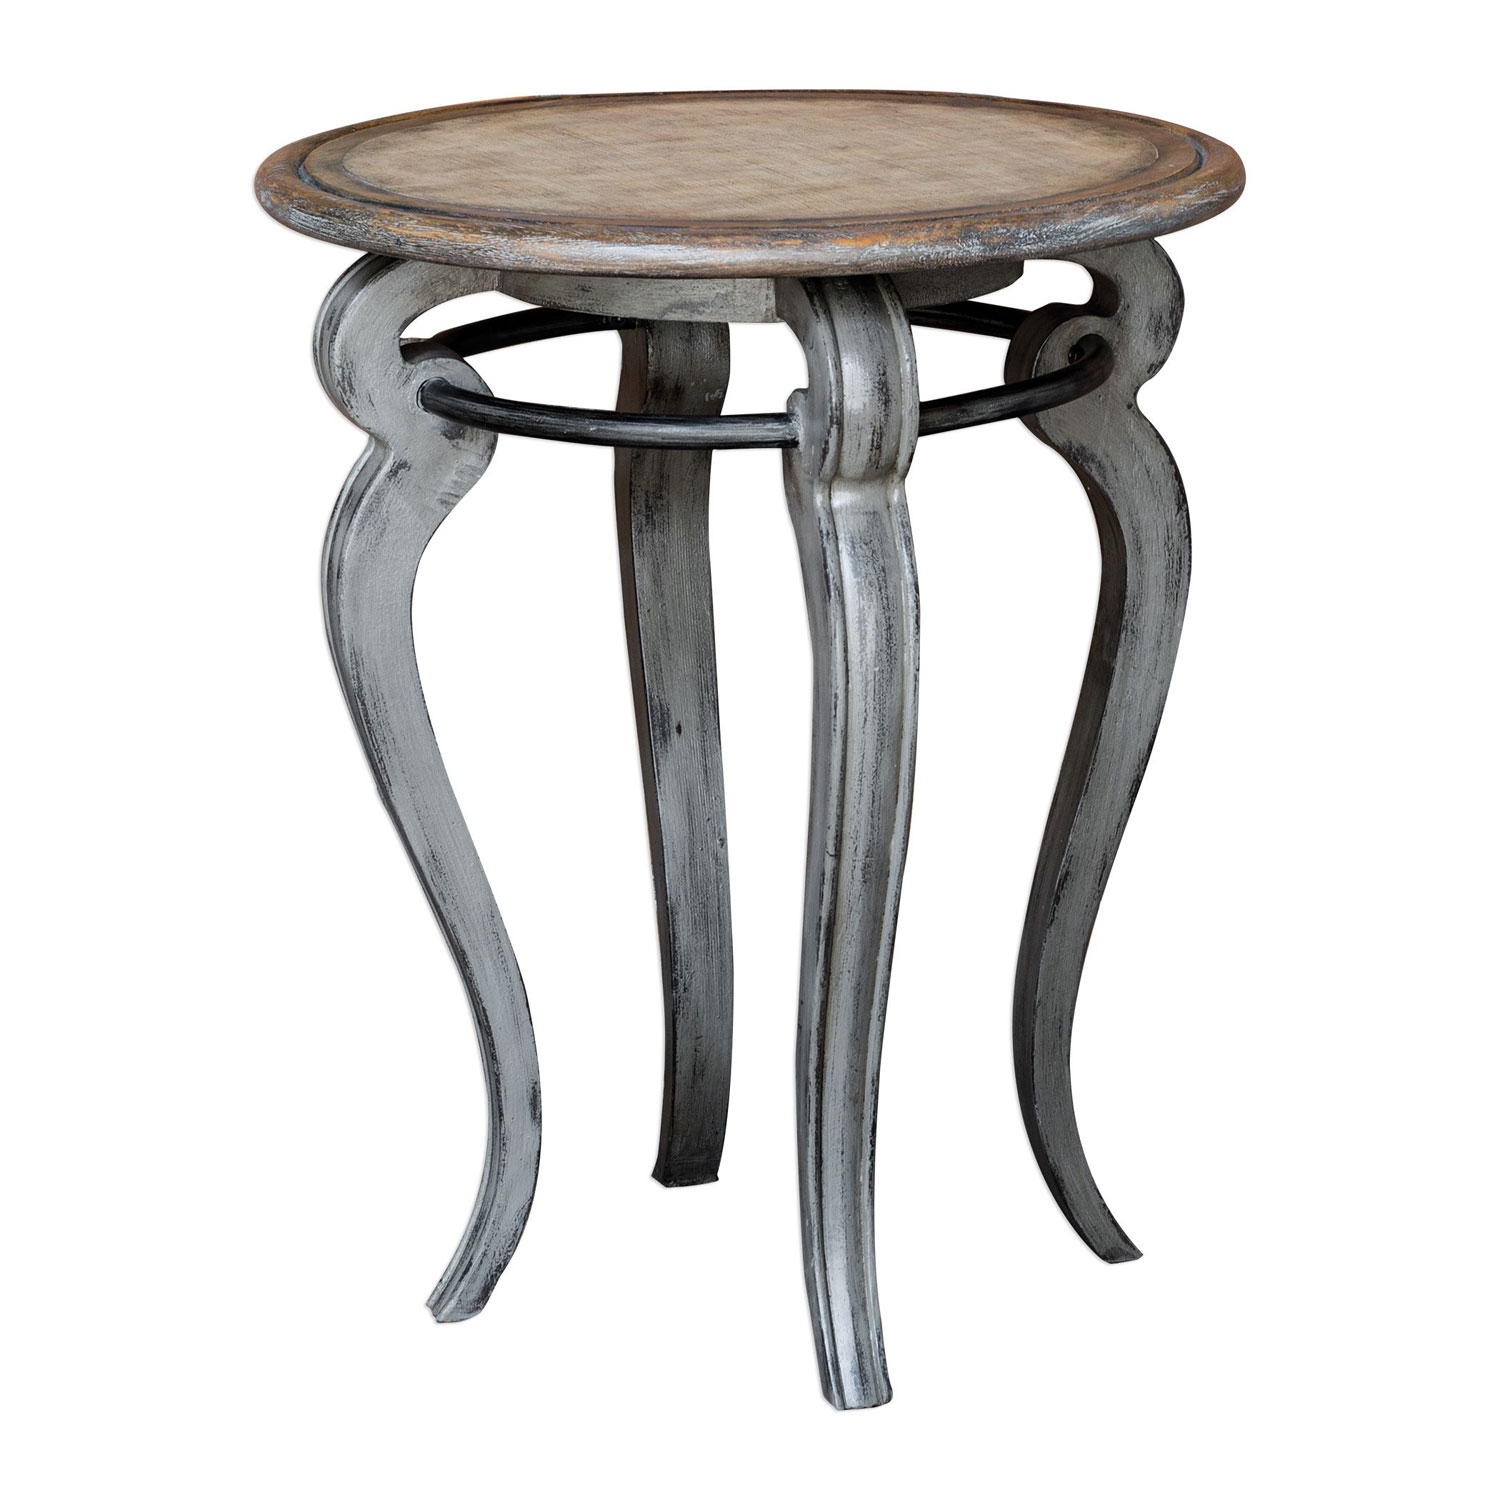 uttermost mariah round gray accent table bellacor hover zoom small kitchen and chairs set black marble safavieh side contemporary bedside lamps retro sofa concrete look coffee